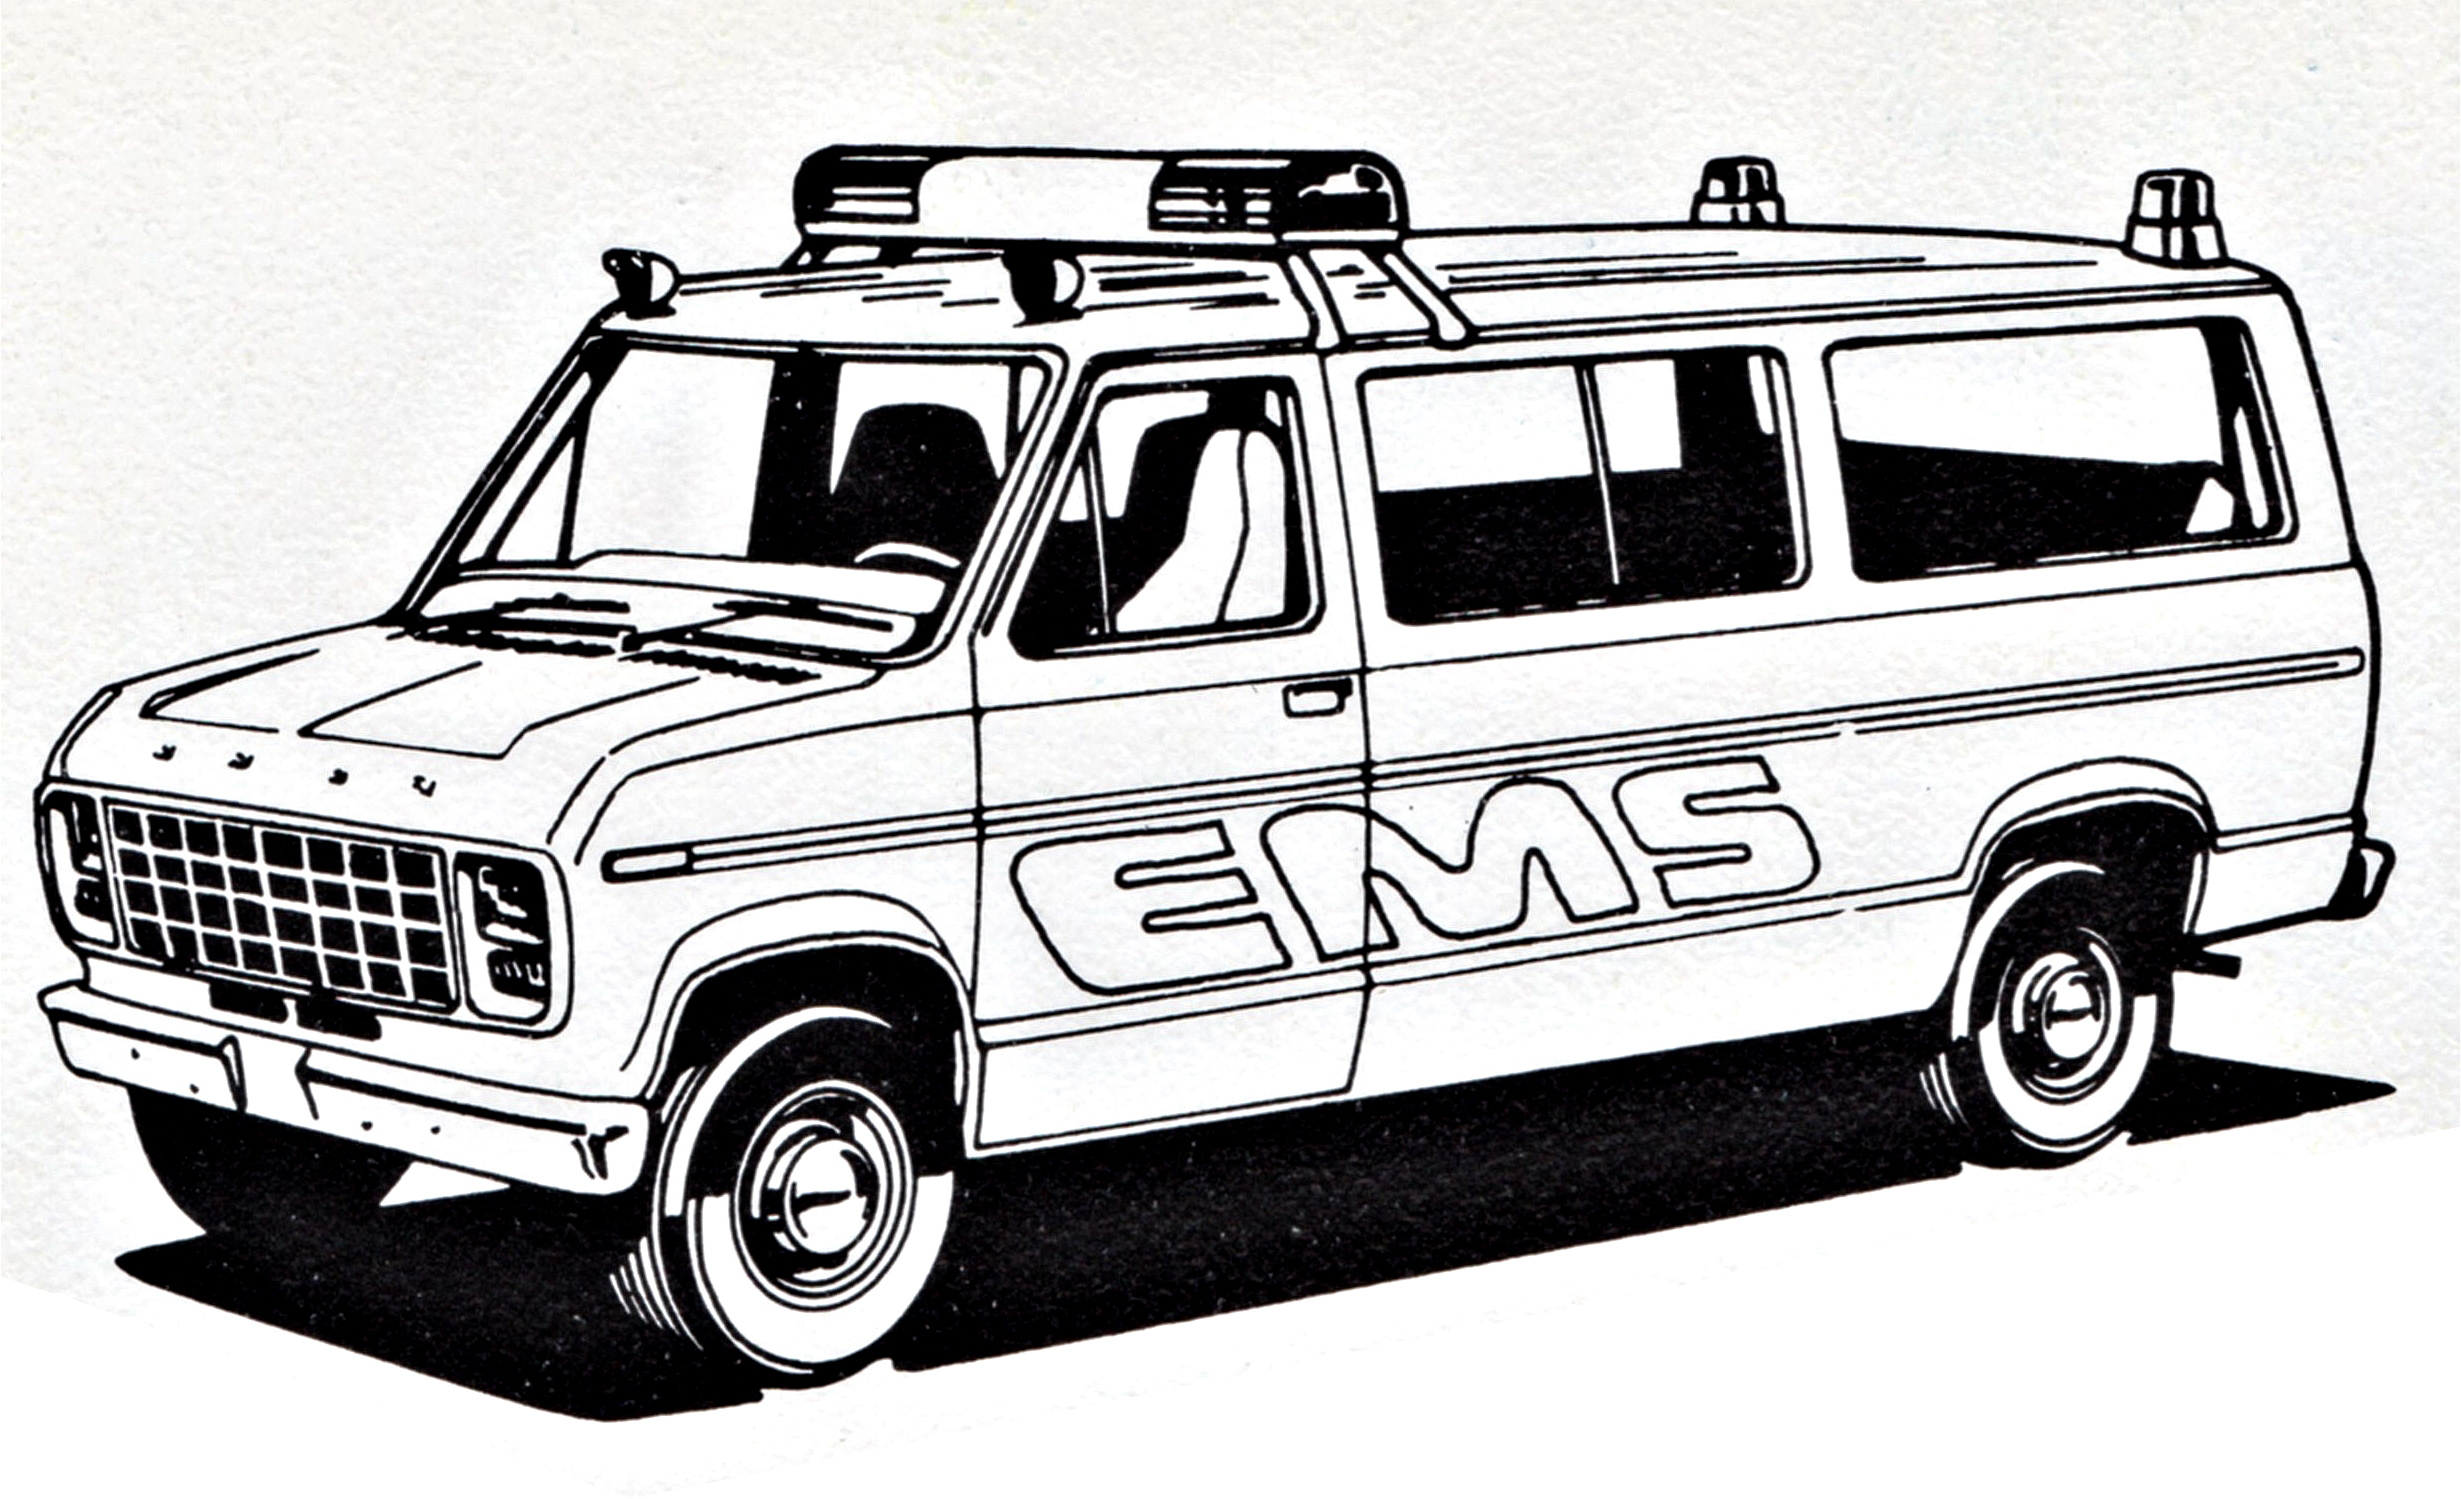 Colouring Picture Van : Ford ems police van coloring sheet by ryanthescooterguy on